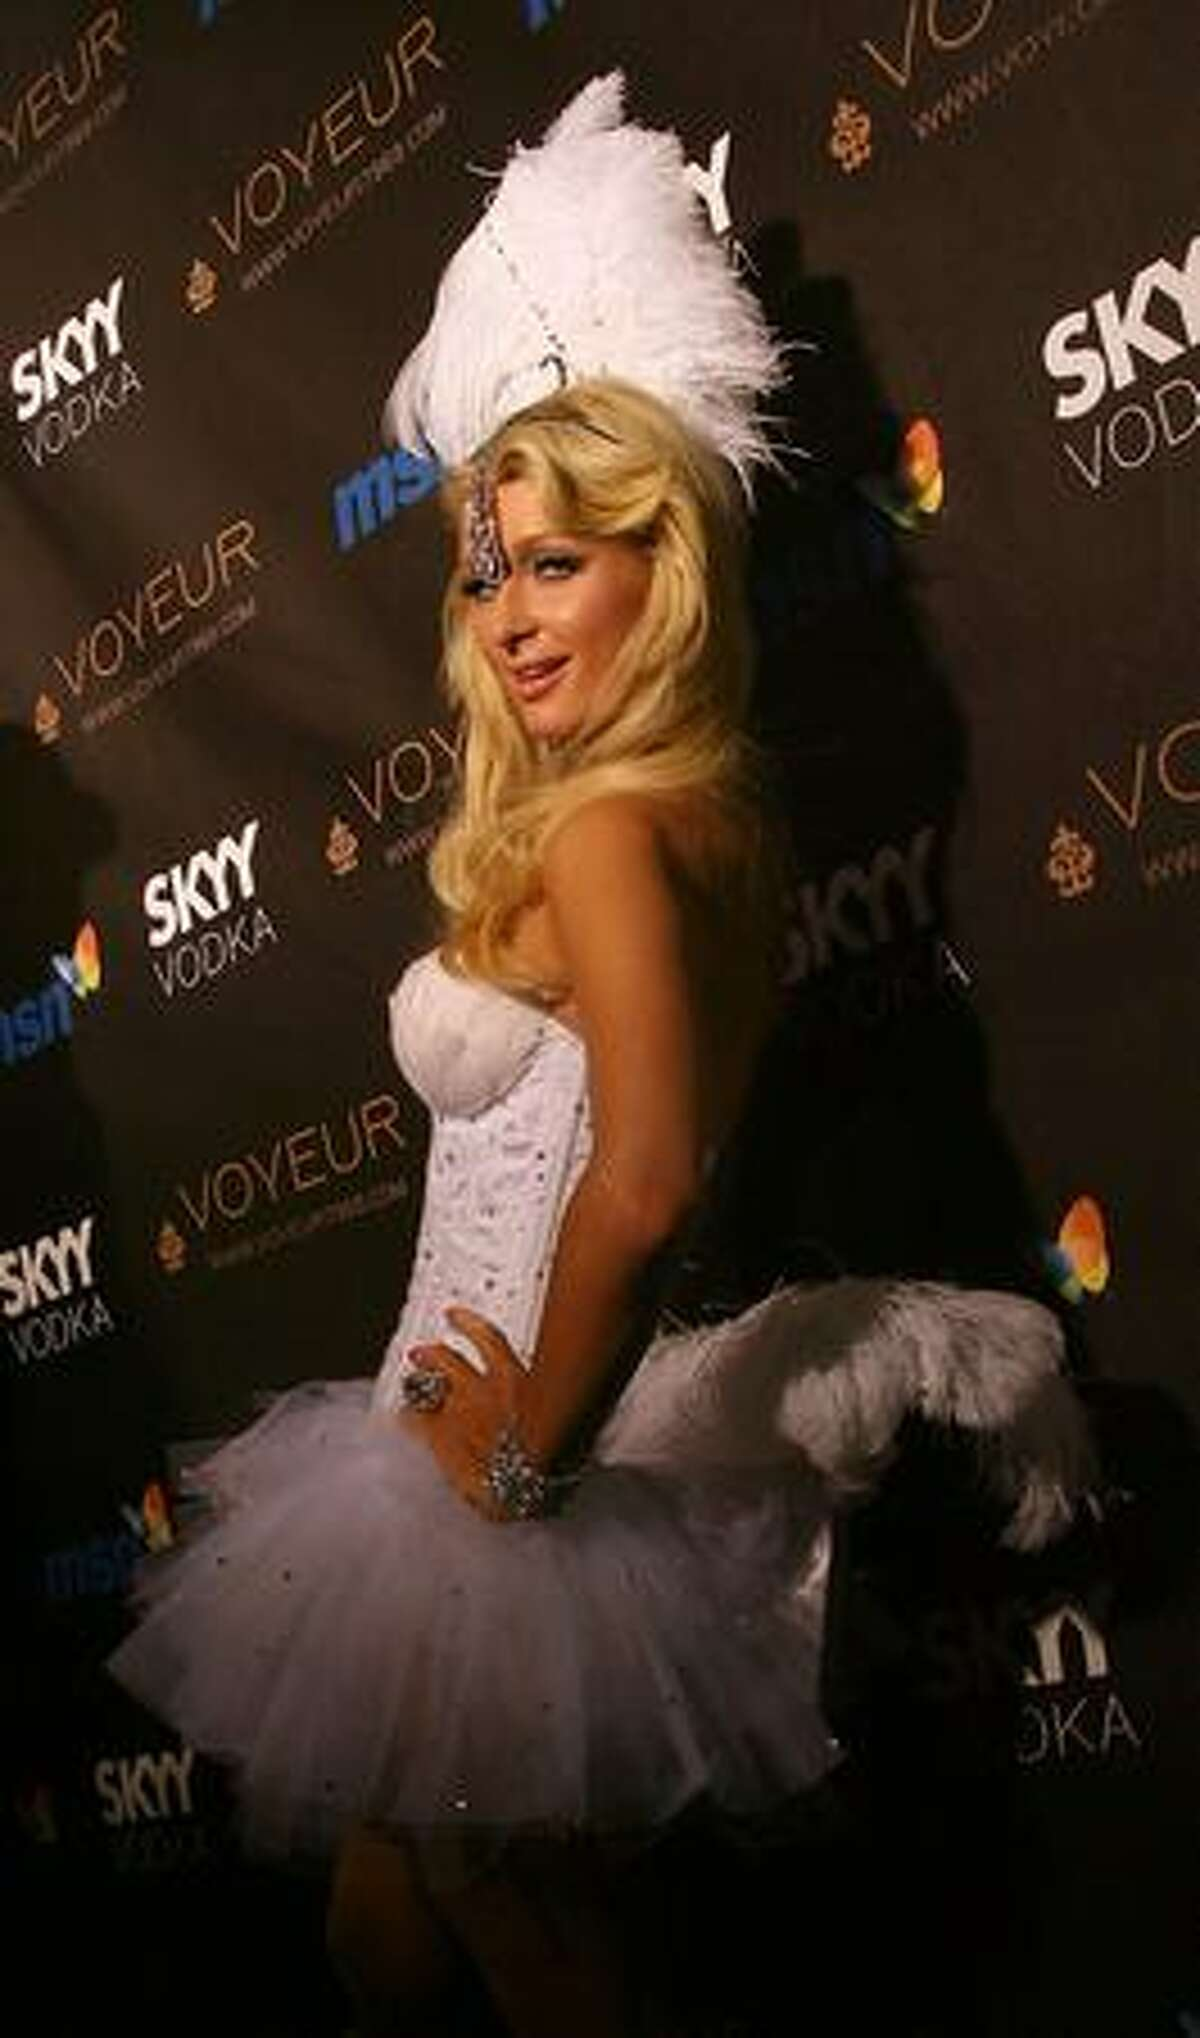 Paris Hilton arrives at the Heidi Klum's 10th Annual Halloween Party in Los Angeles, California.